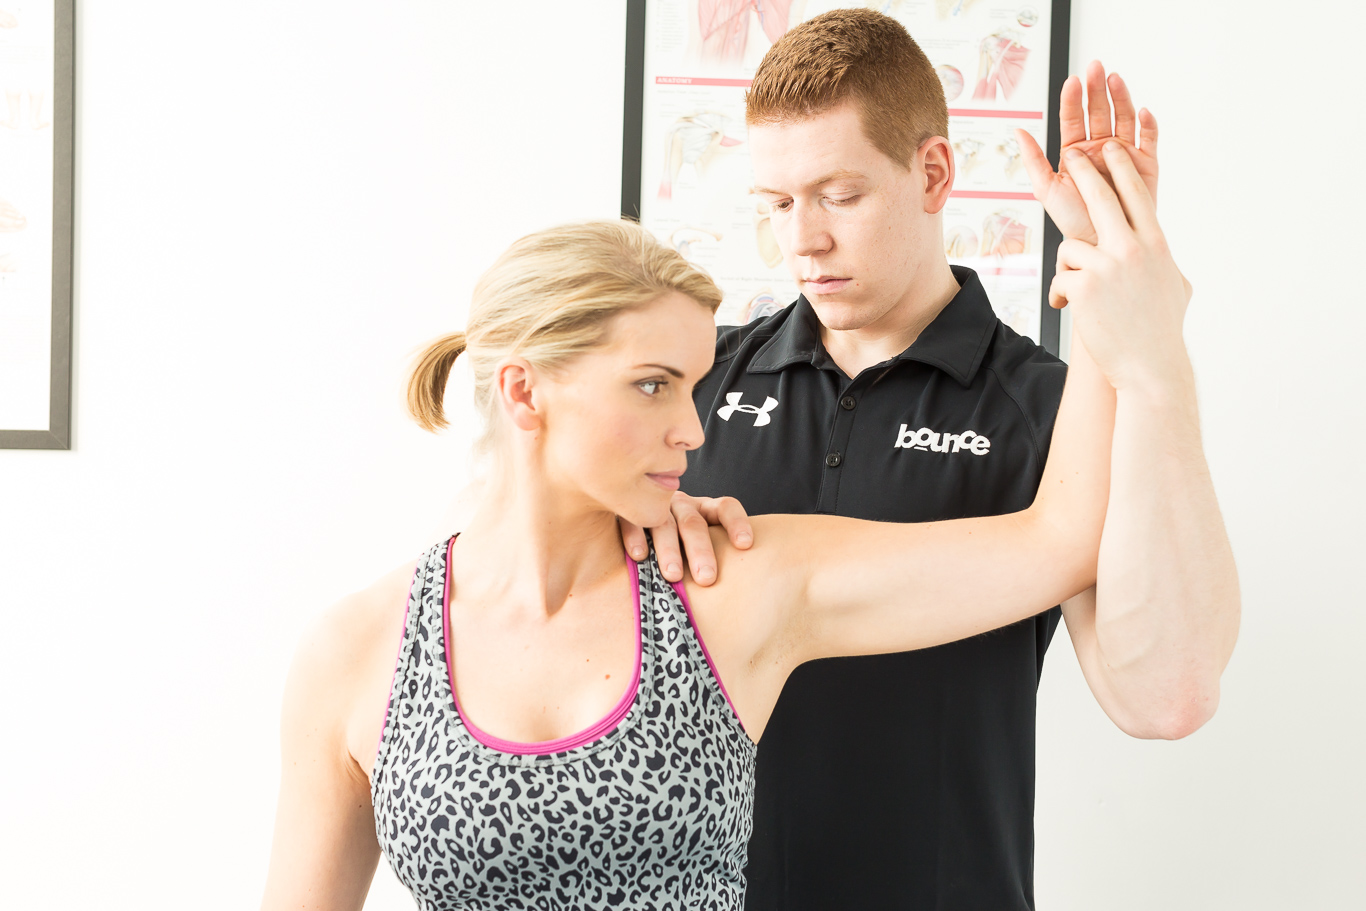 We believe that everybody should have the opportunity to access the highest quality of treatment and practitioners. All of our clinicians are currently or have previously been involved in professional sports teams and hold considerable experience of treating elite athletes. Whilst working closely with such individuals, at Bounce the same dynamic and integrated approach is taken to benefit everyone, from the professional sportsperson to the non-exercising individual.